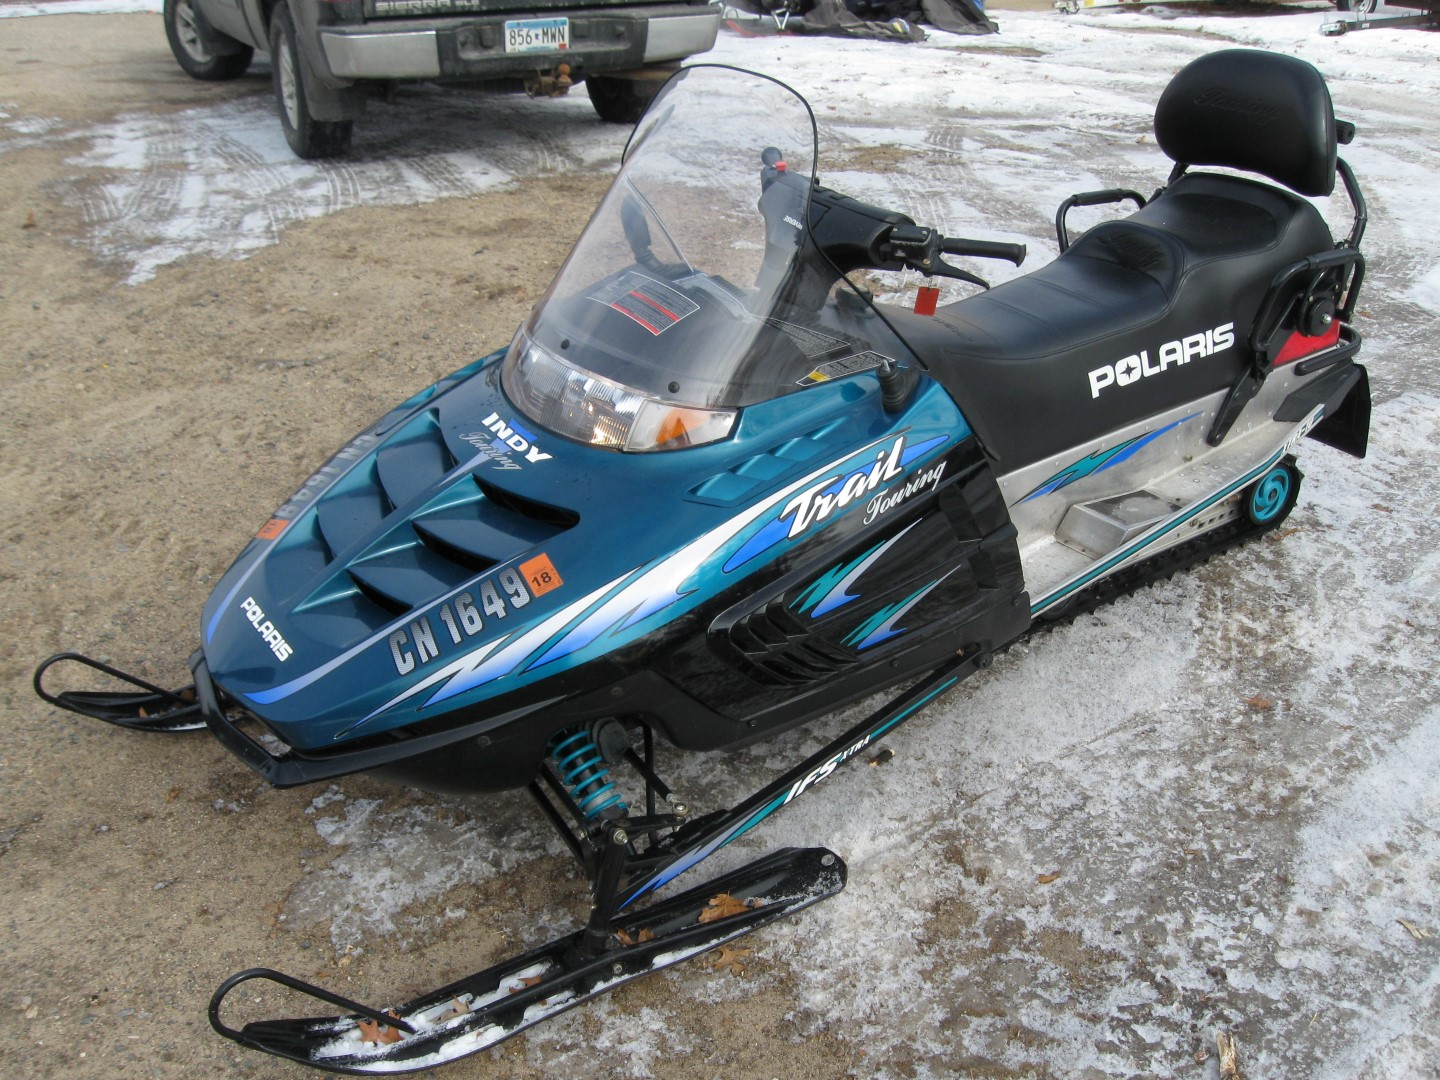 New motorcycles atvs snowmobiles and watercraft from for 500 yamaha snowmobile